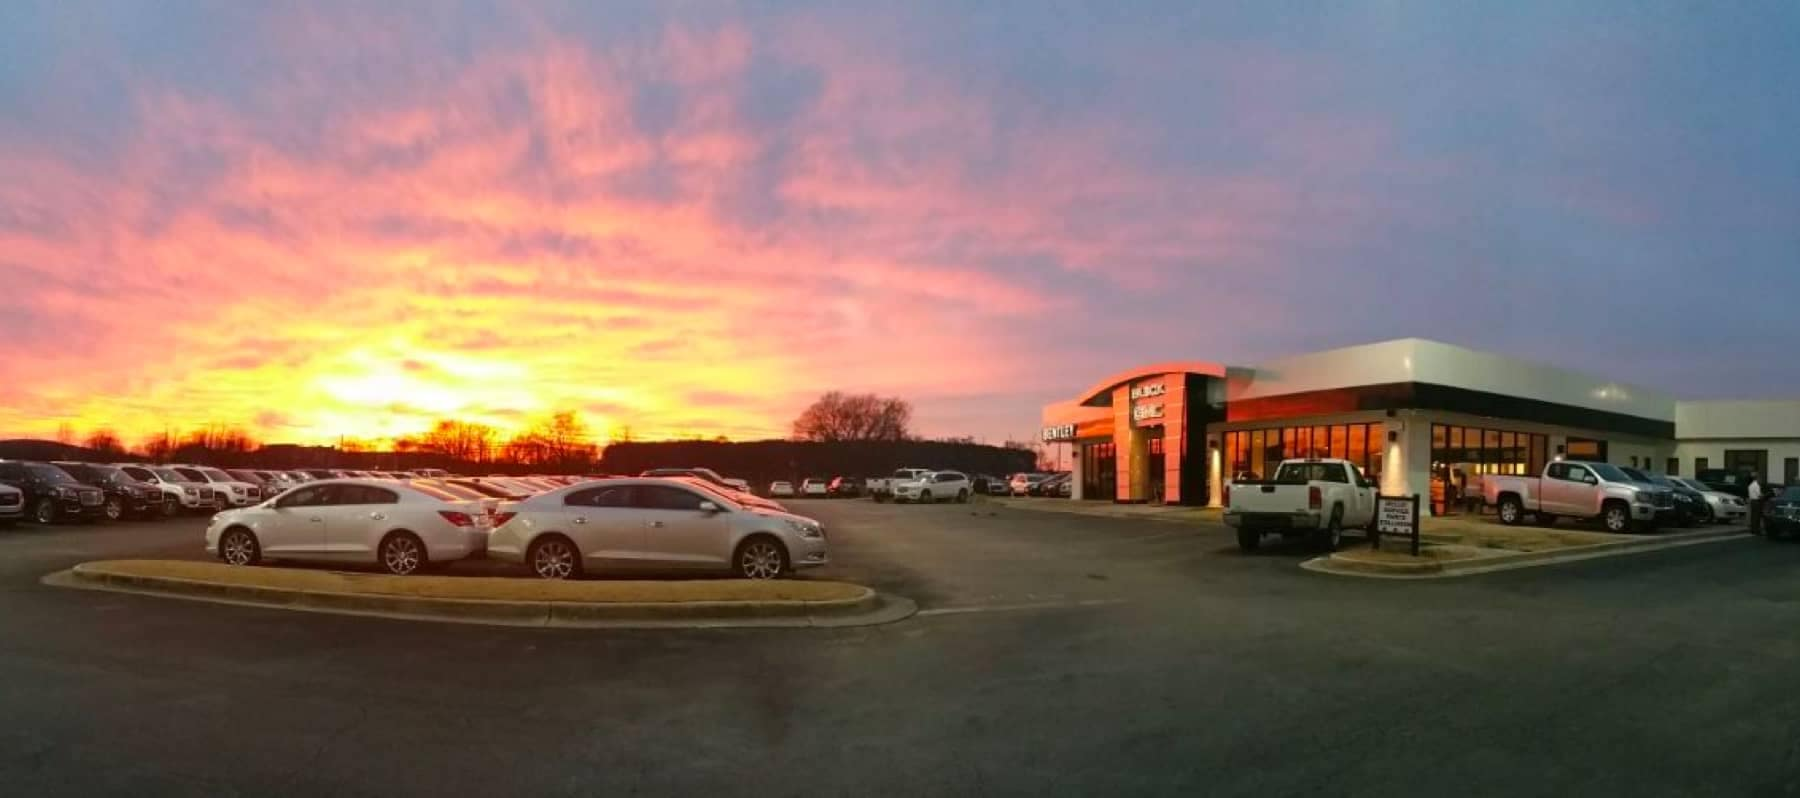 exterior view of dealership with sun setting in the distance